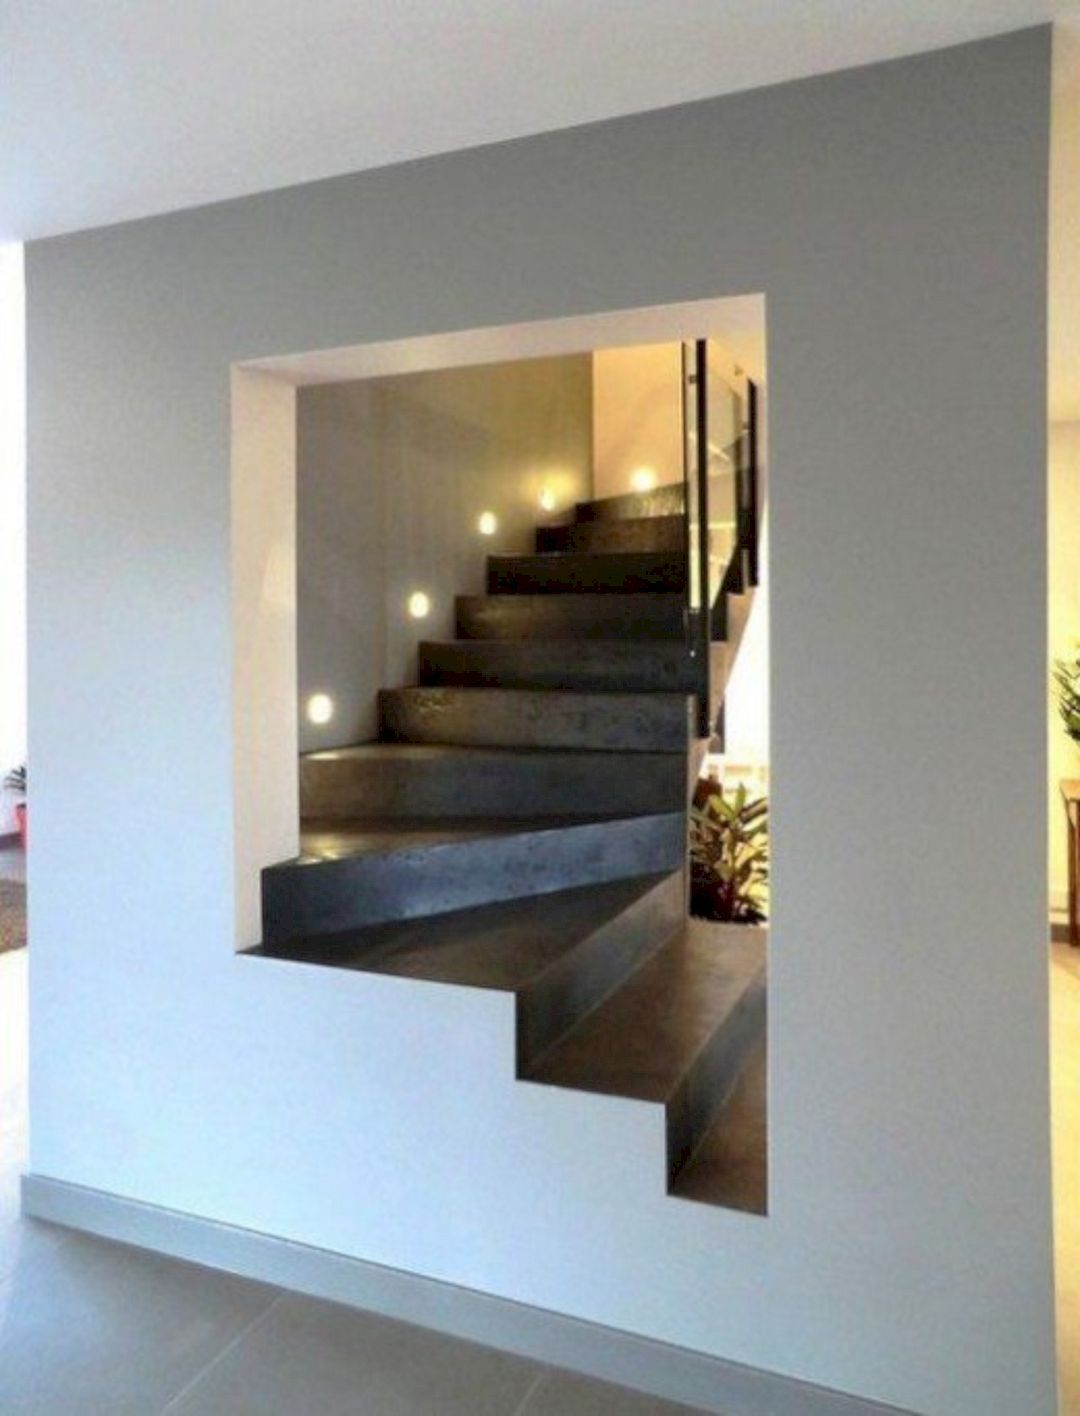 Charmant 63 Impressive Staircase Design Ideas  Https://www.futuristarchitecture.com/25495 Staircase Design Ideas.html